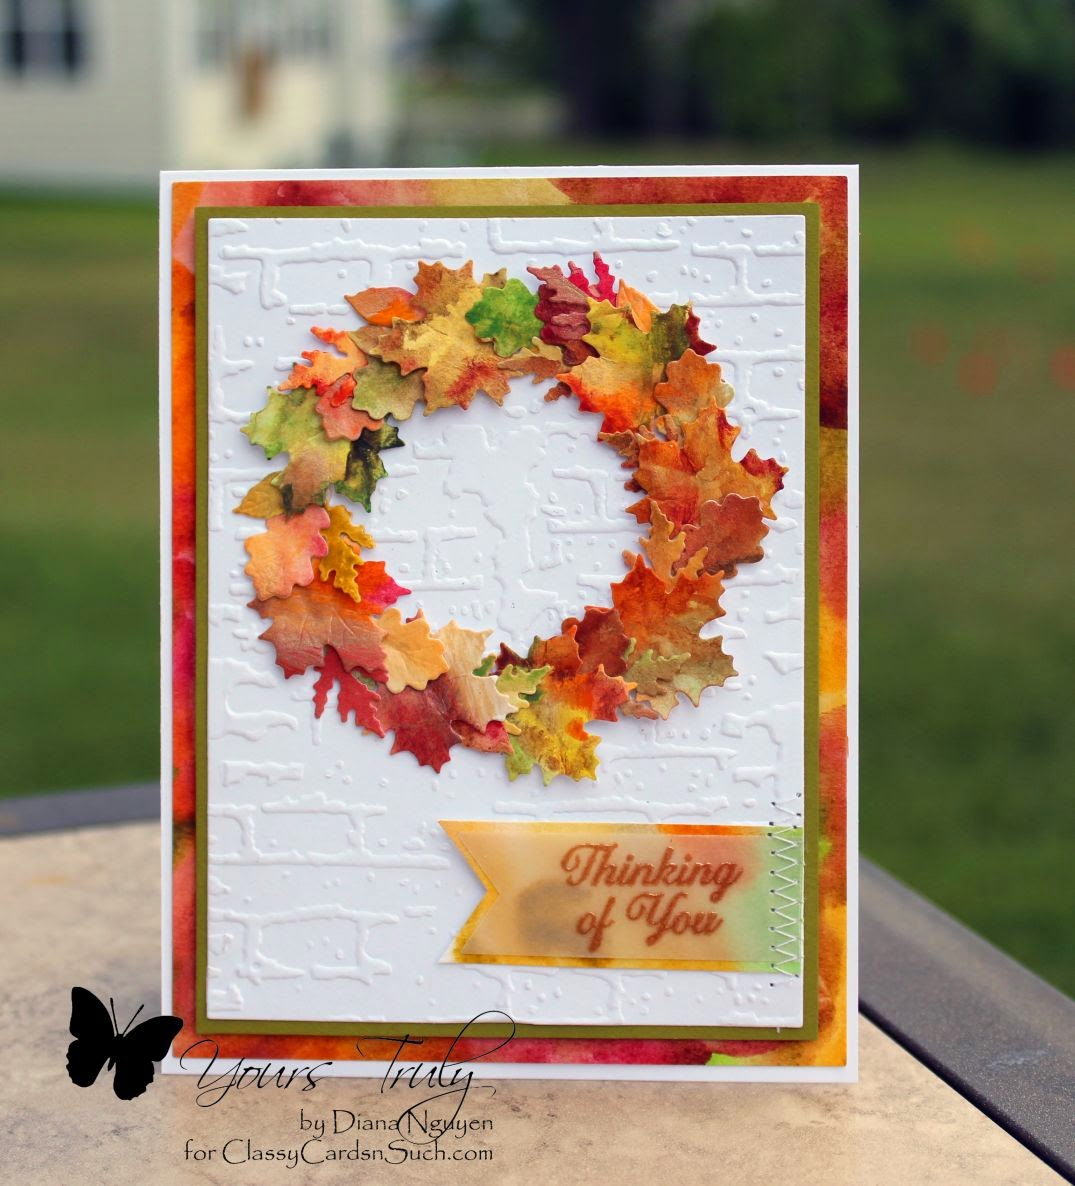 Impression Obsession Little Leaves, Our Daily Bread Designs Ornate Frame Sentiments, brick embossing folder, watercolor, vellum, Diana Nguyen